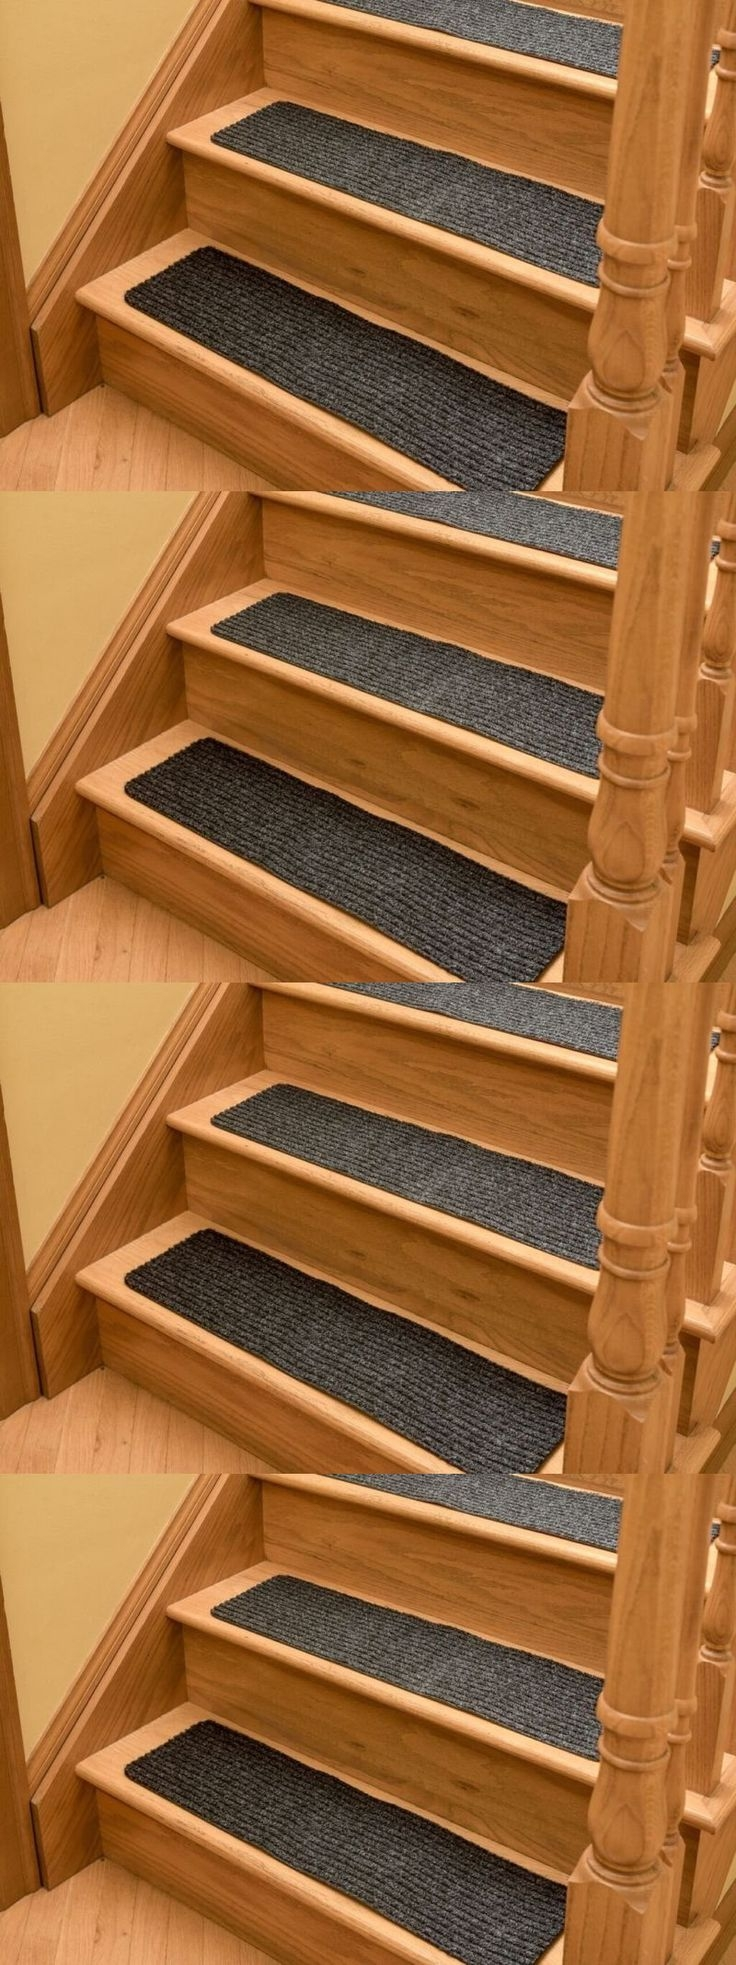 Top 25 Best Carpet Stair Treads Ideas On Pinterest Wood Stair Pertaining To Non Slip Stair Treads Carpets (#20 of 20)